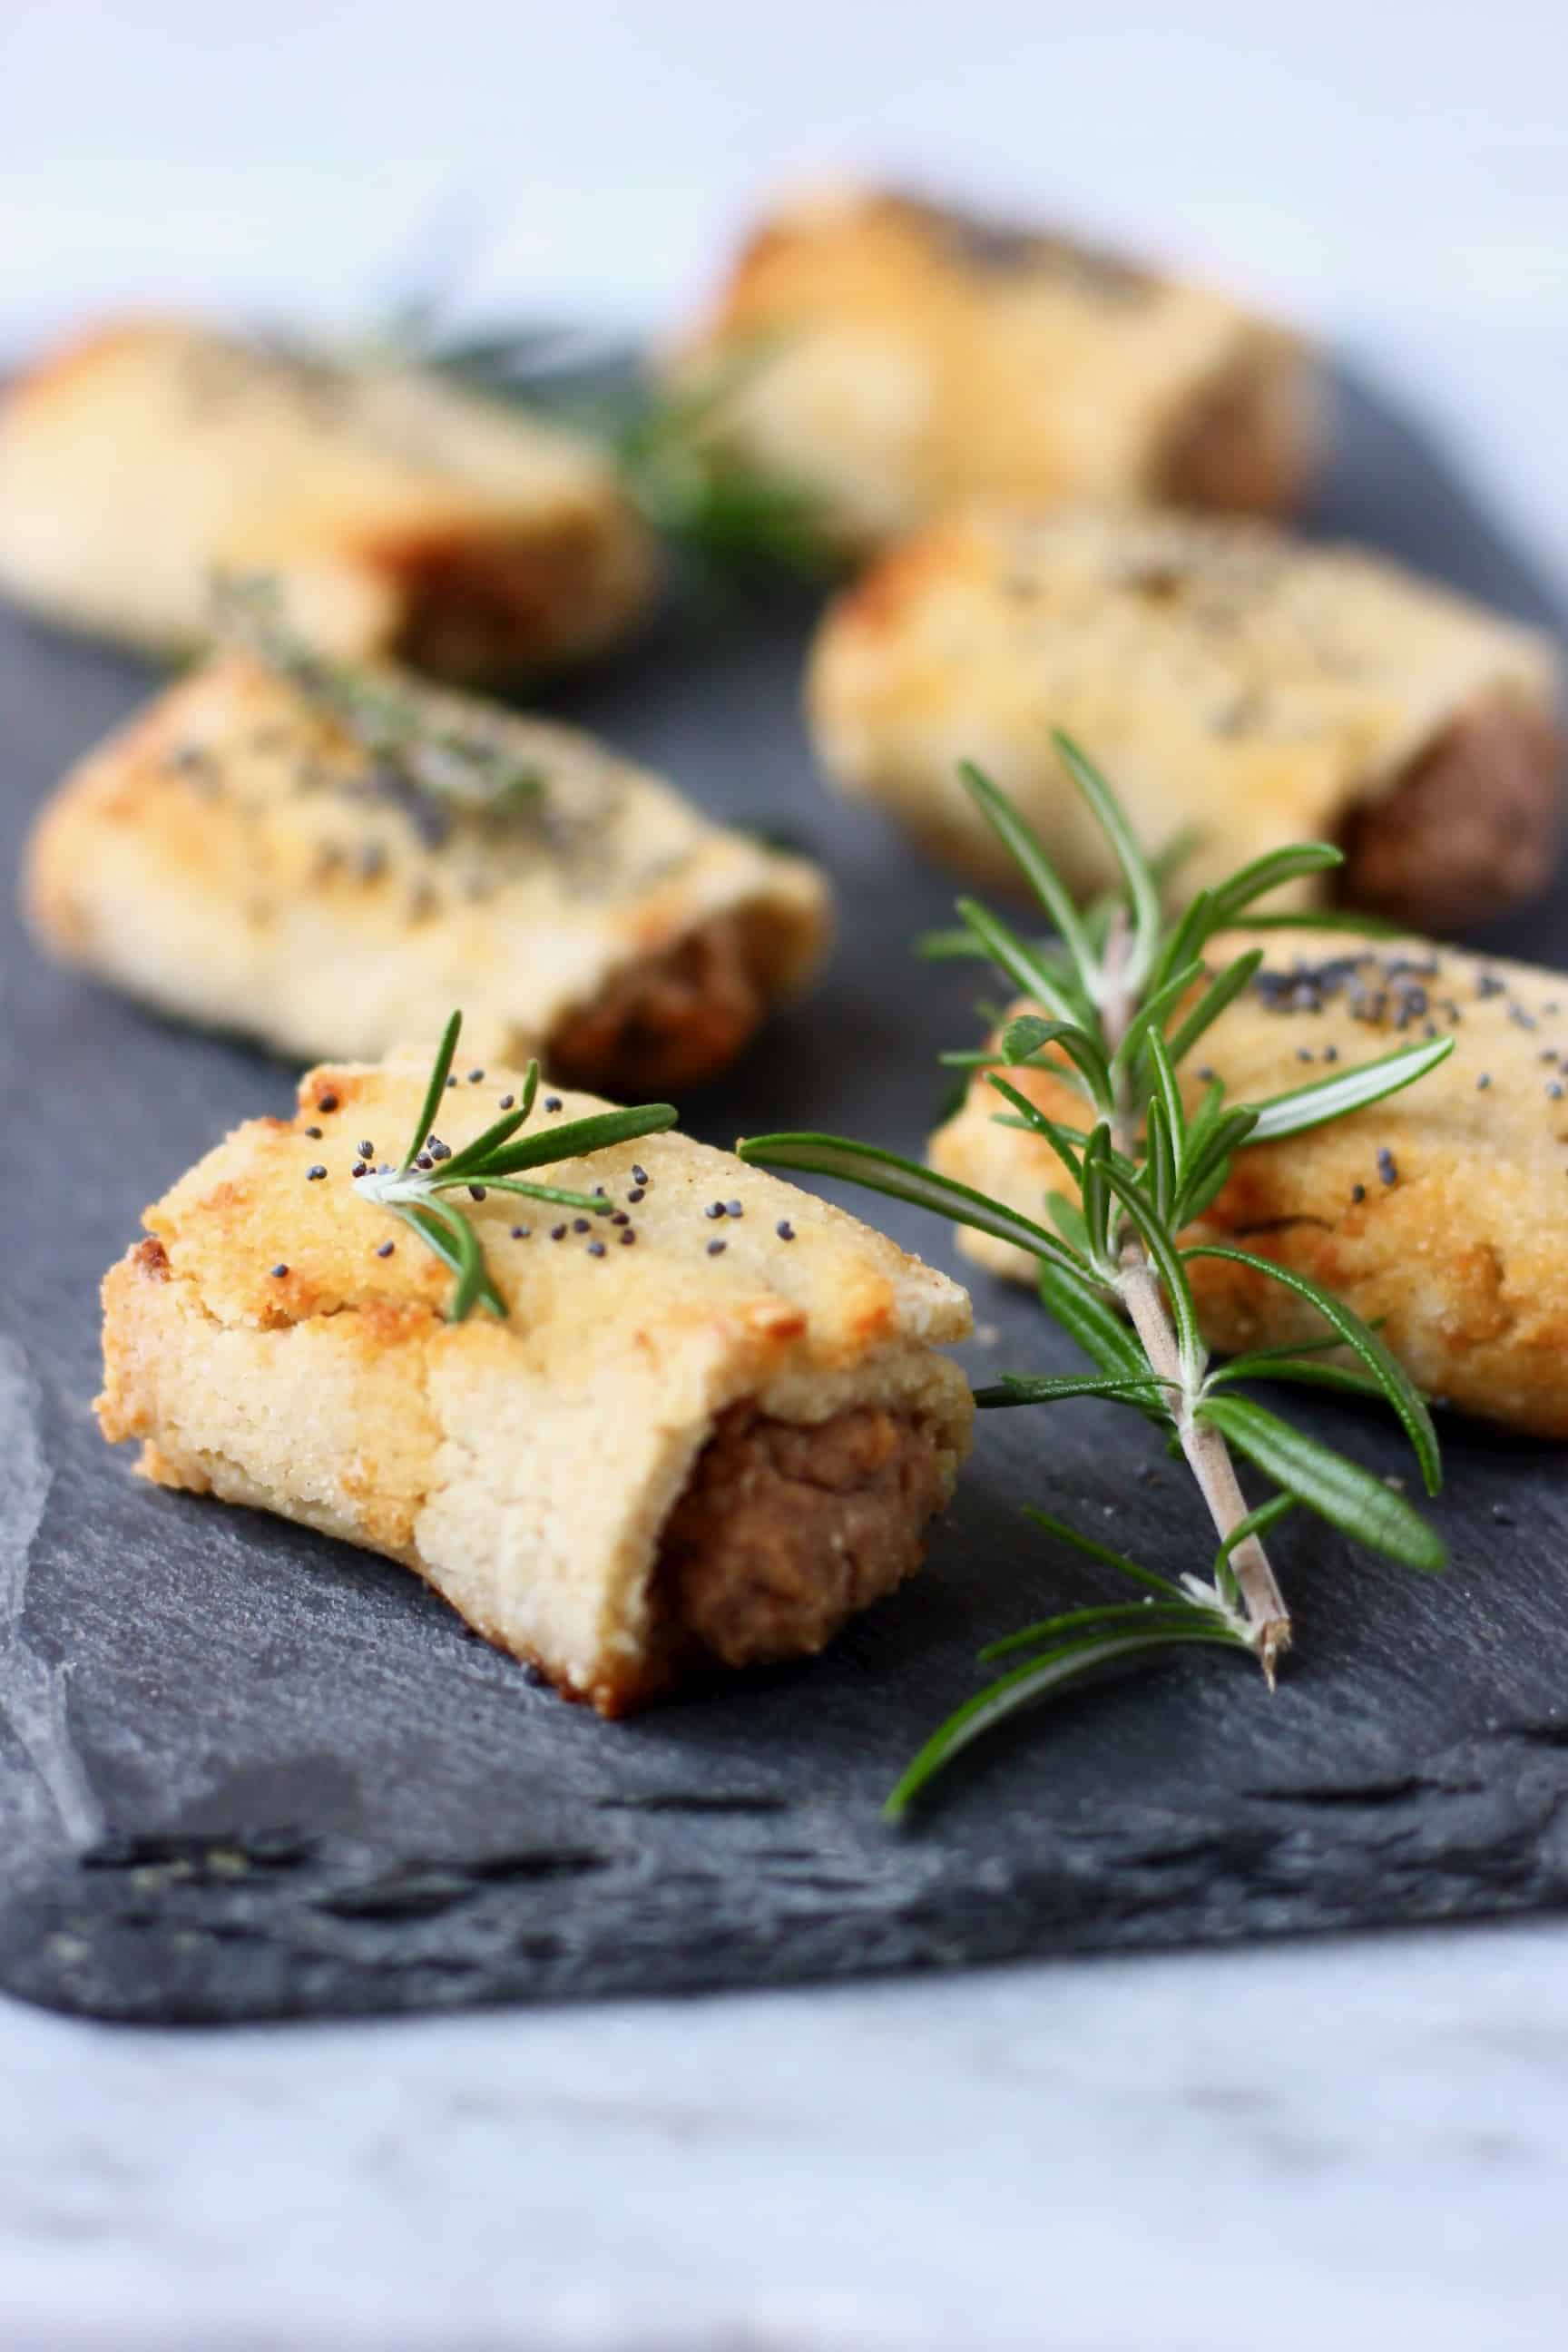 Six vegan sausage rolls sprinkled with poppy seeds on a black slab decorated with sprigs of rosemary